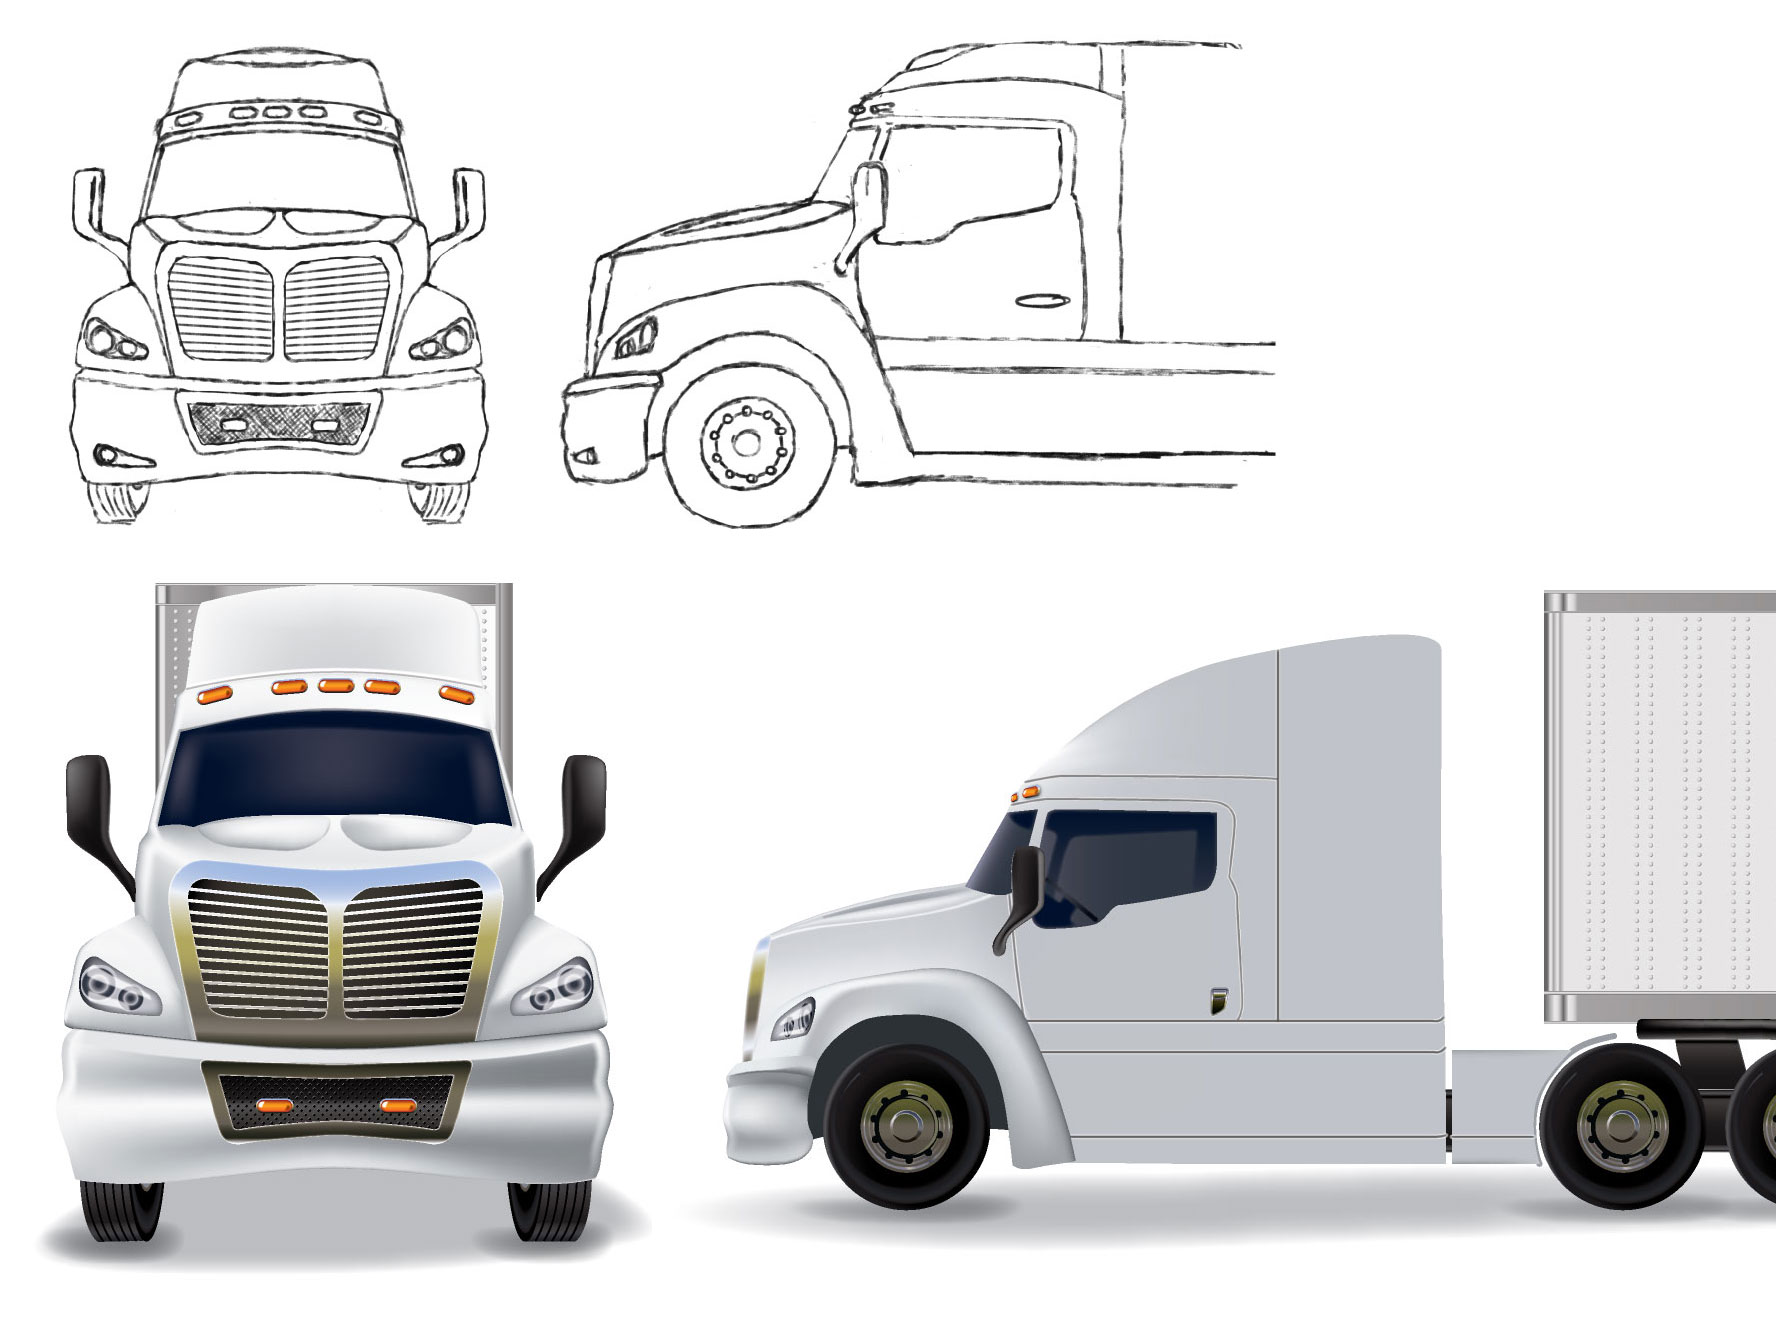 Tractor Trailer – Sketch and vector rendering